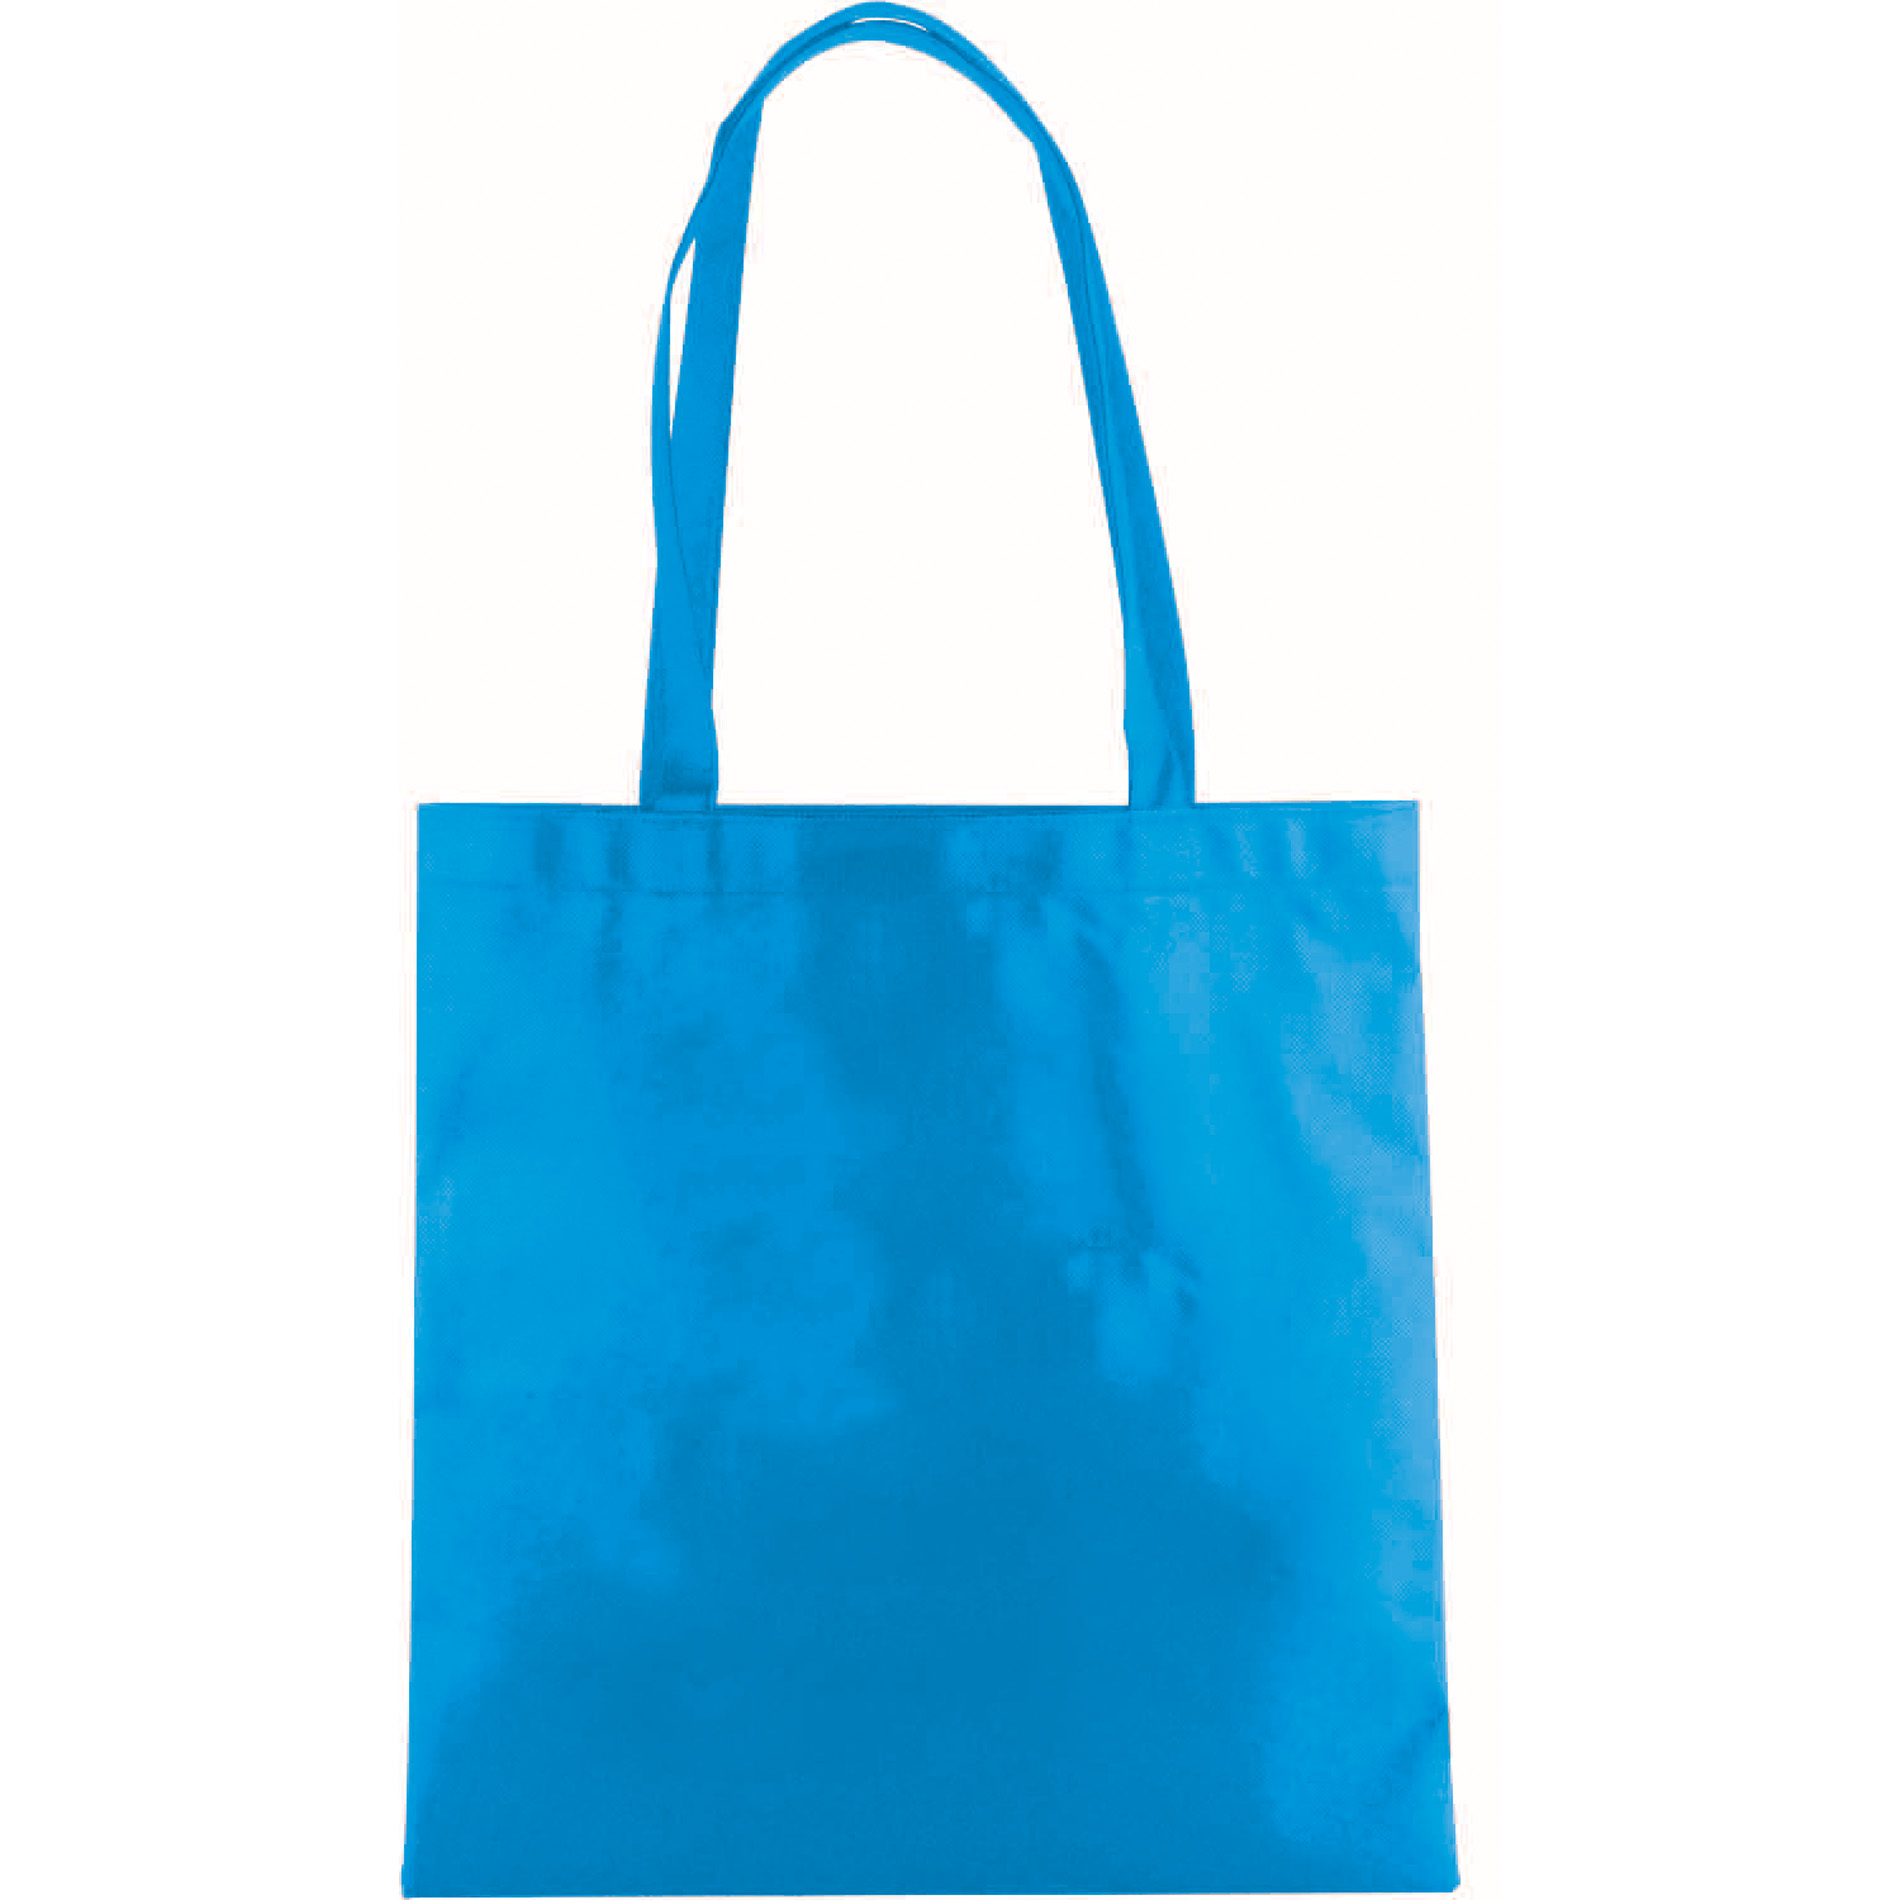 LEEDS 2150-04 - Non-Woven Convention Tote